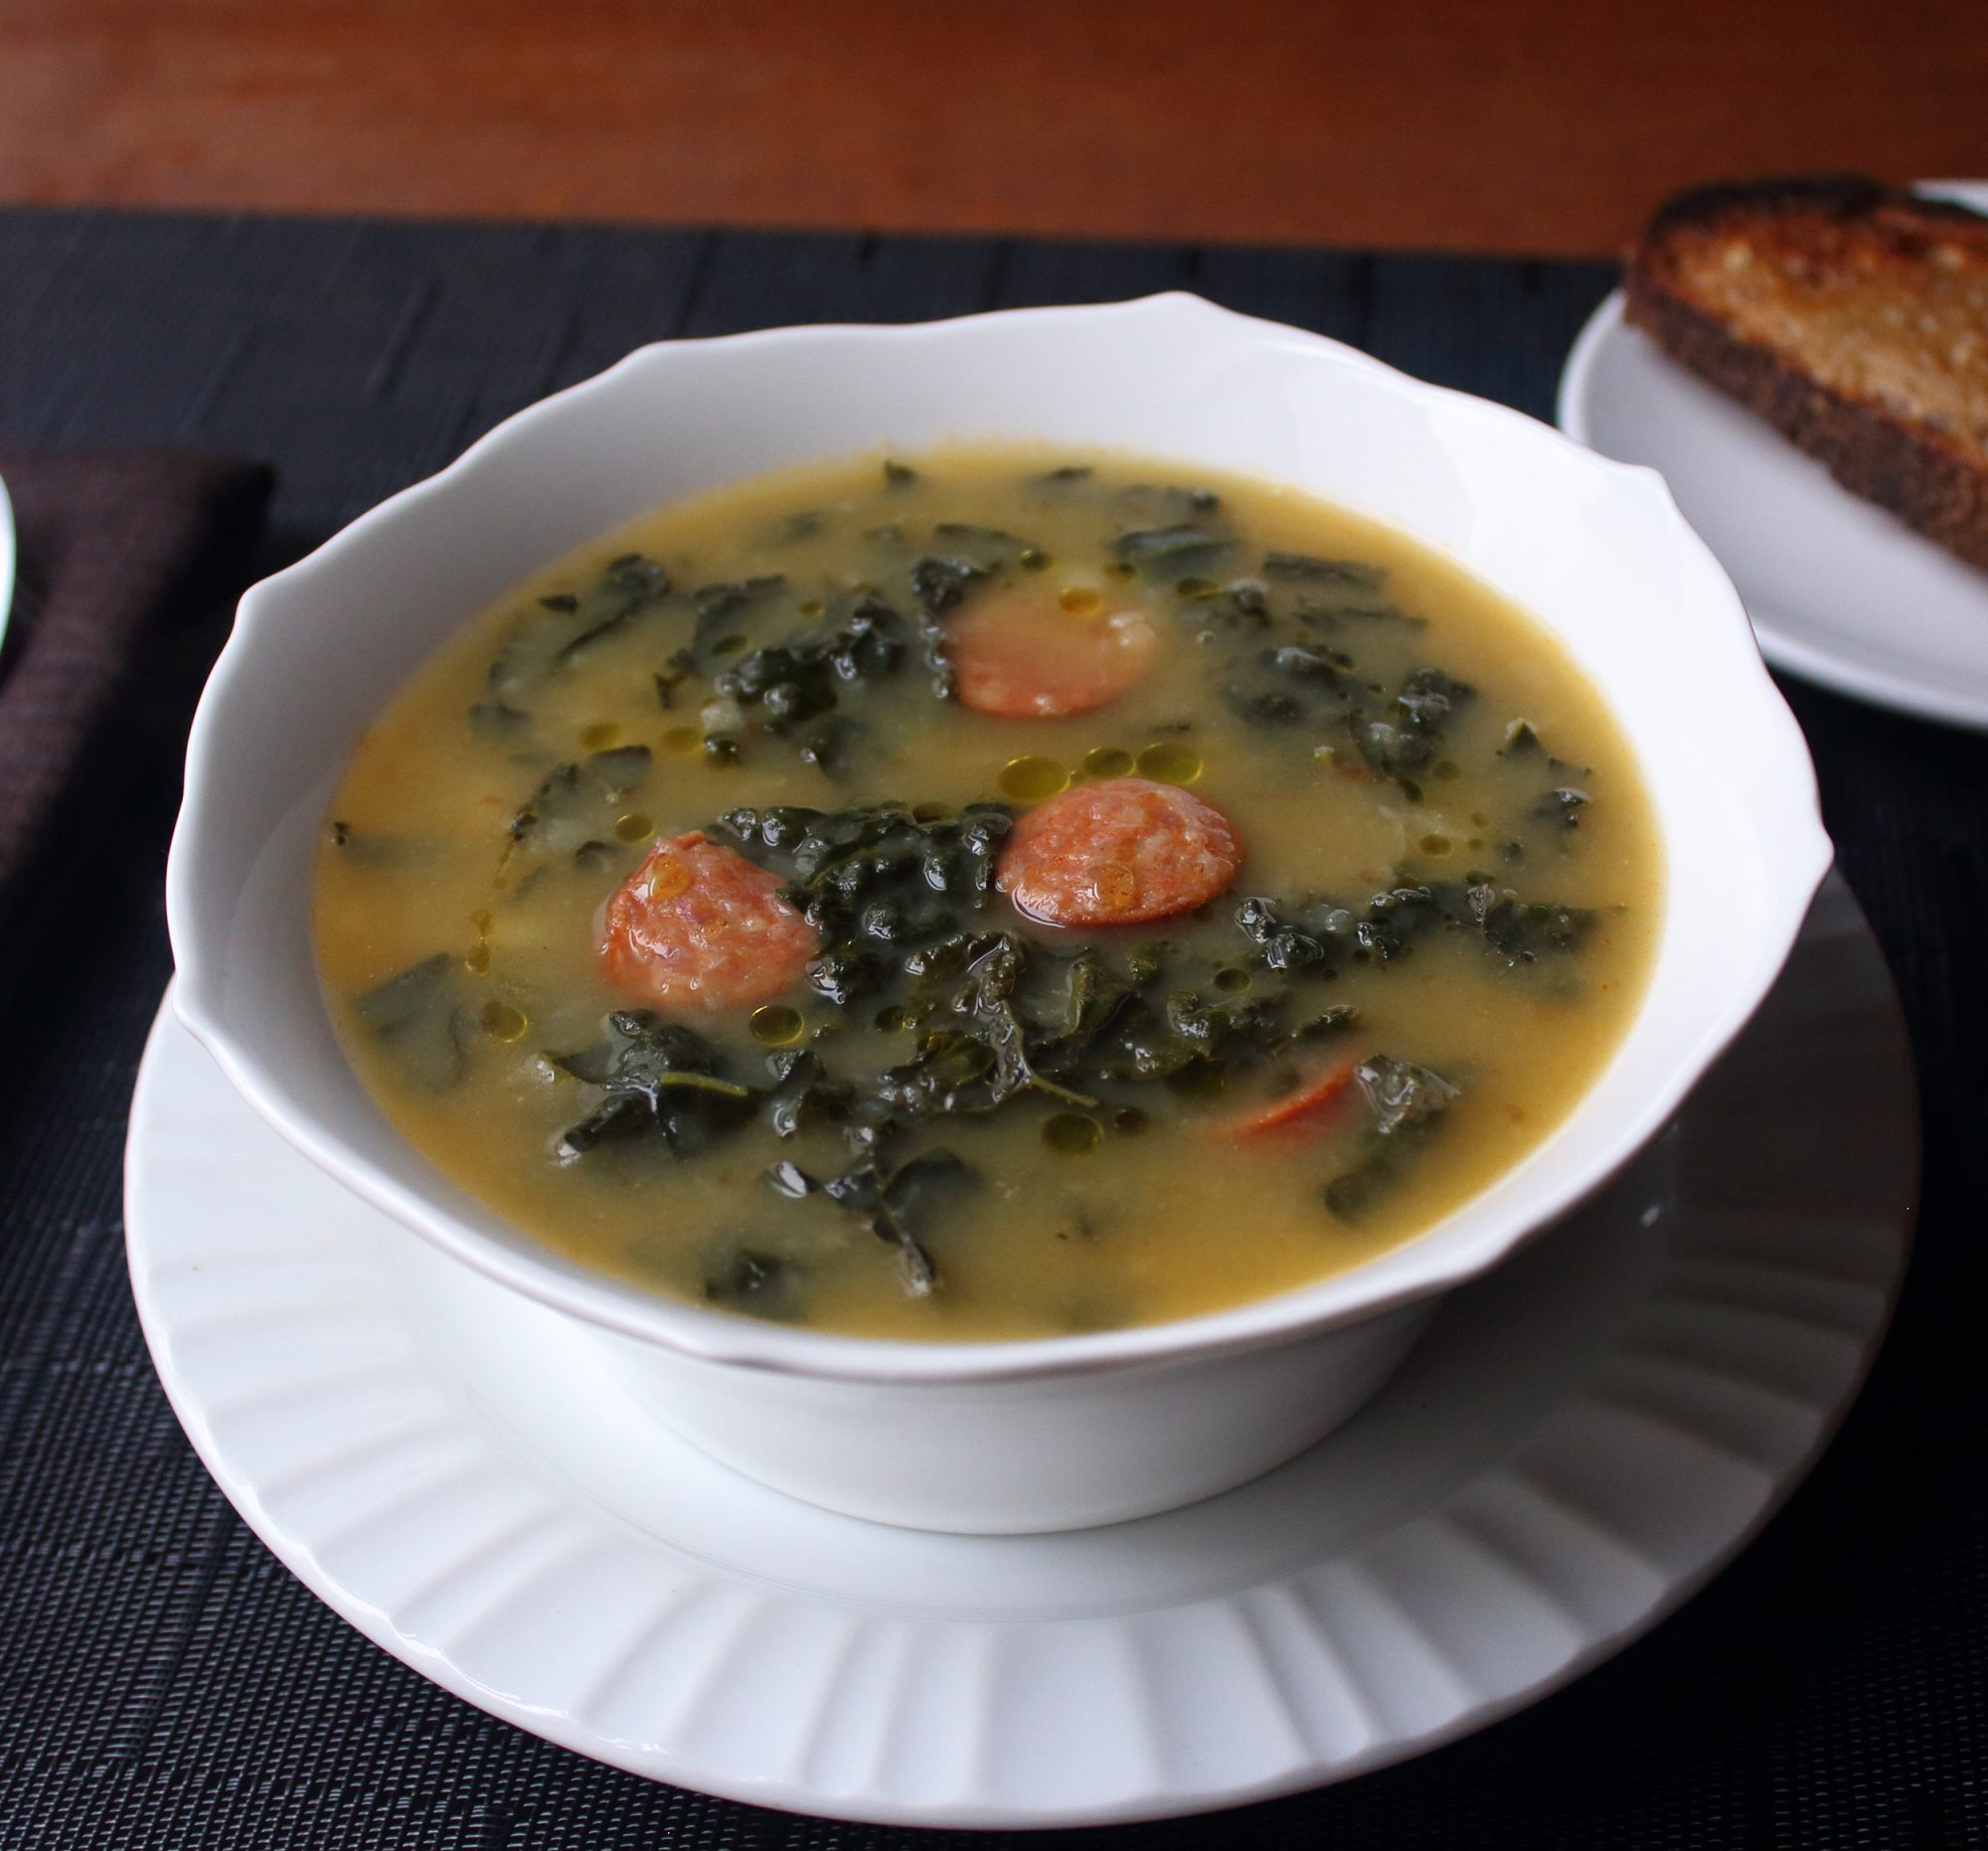 a bowl of kale soup with sliced sausage